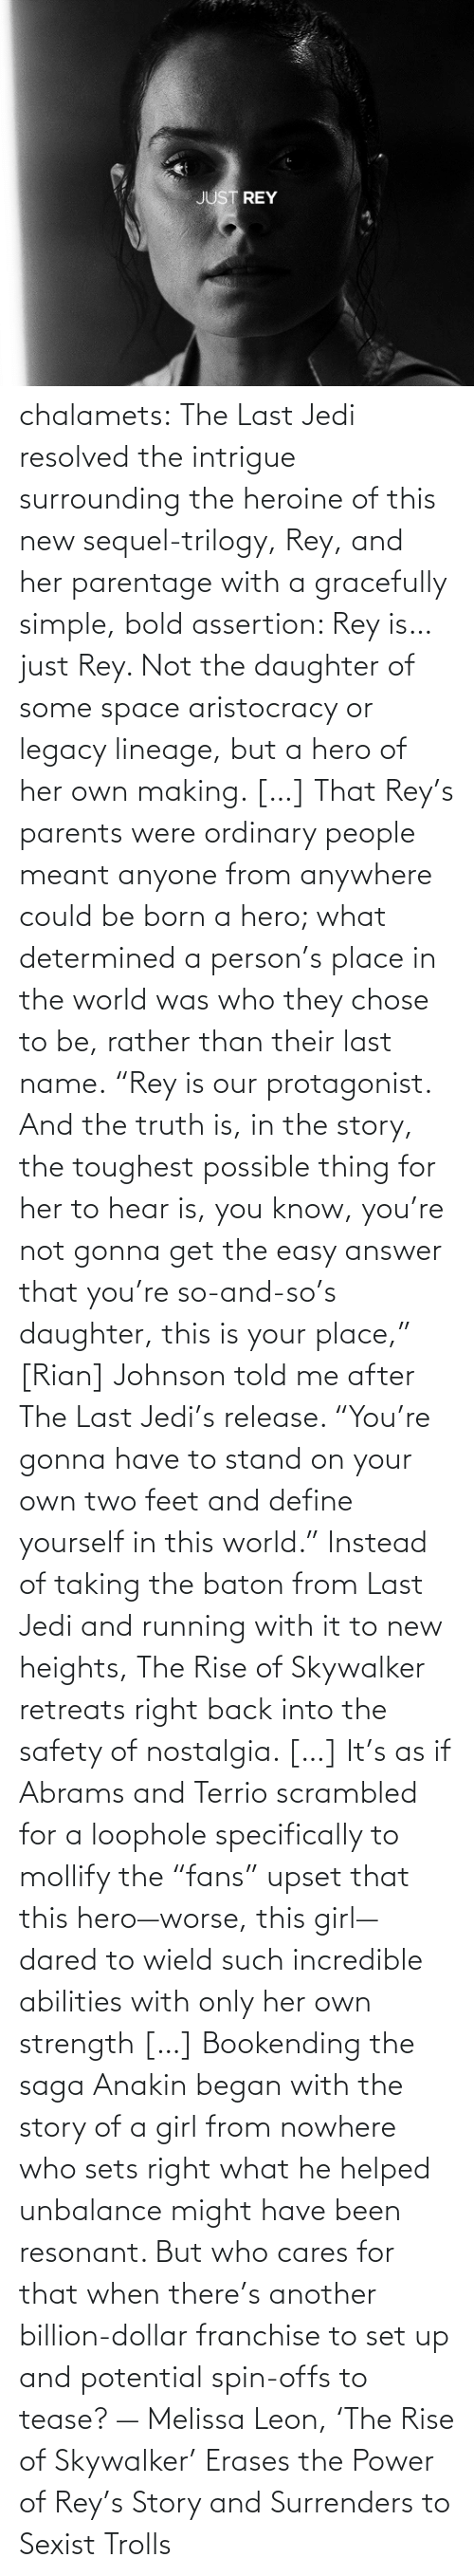 "instead: chalamets:  The Last Jedi resolved the intrigue surrounding the heroine of this new sequel-trilogy, Rey, and her parentage with a gracefully simple, bold assertion: Rey is… just Rey. Not the daughter of some space aristocracy or legacy lineage, but a hero of her own making. […] That Rey's parents were ordinary people meant anyone from anywhere could be born a hero; what determined a person's place in the world was who they chose to be, rather than their last name. ""Rey is our protagonist. And the truth is, in the story, the toughest possible thing for her to hear is, you know, you're not gonna get the easy answer that you're so-and-so's daughter, this is your place,"" [Rian] Johnson told me after The Last Jedi's release. ""You're gonna have to stand on your own two feet and define yourself in this world."" Instead of taking the baton from Last Jedi and running with it to new heights, The Rise of Skywalker retreats right back into the safety of nostalgia. […] It's as if Abrams and Terrio scrambled for a loophole specifically to mollify the ""fans"" upset that this hero—worse, this girl—dared to wield such incredible abilities with only her own strength […] Bookending the saga Anakin began with the story of a girl from nowhere who sets right what he helped unbalance might have been resonant. But who cares for that when there's another billion-dollar franchise to set up and potential spin-offs to tease? — Melissa Leon, 'The Rise of Skywalker' Erases the Power of Rey's Story and Surrenders to Sexist Trolls"